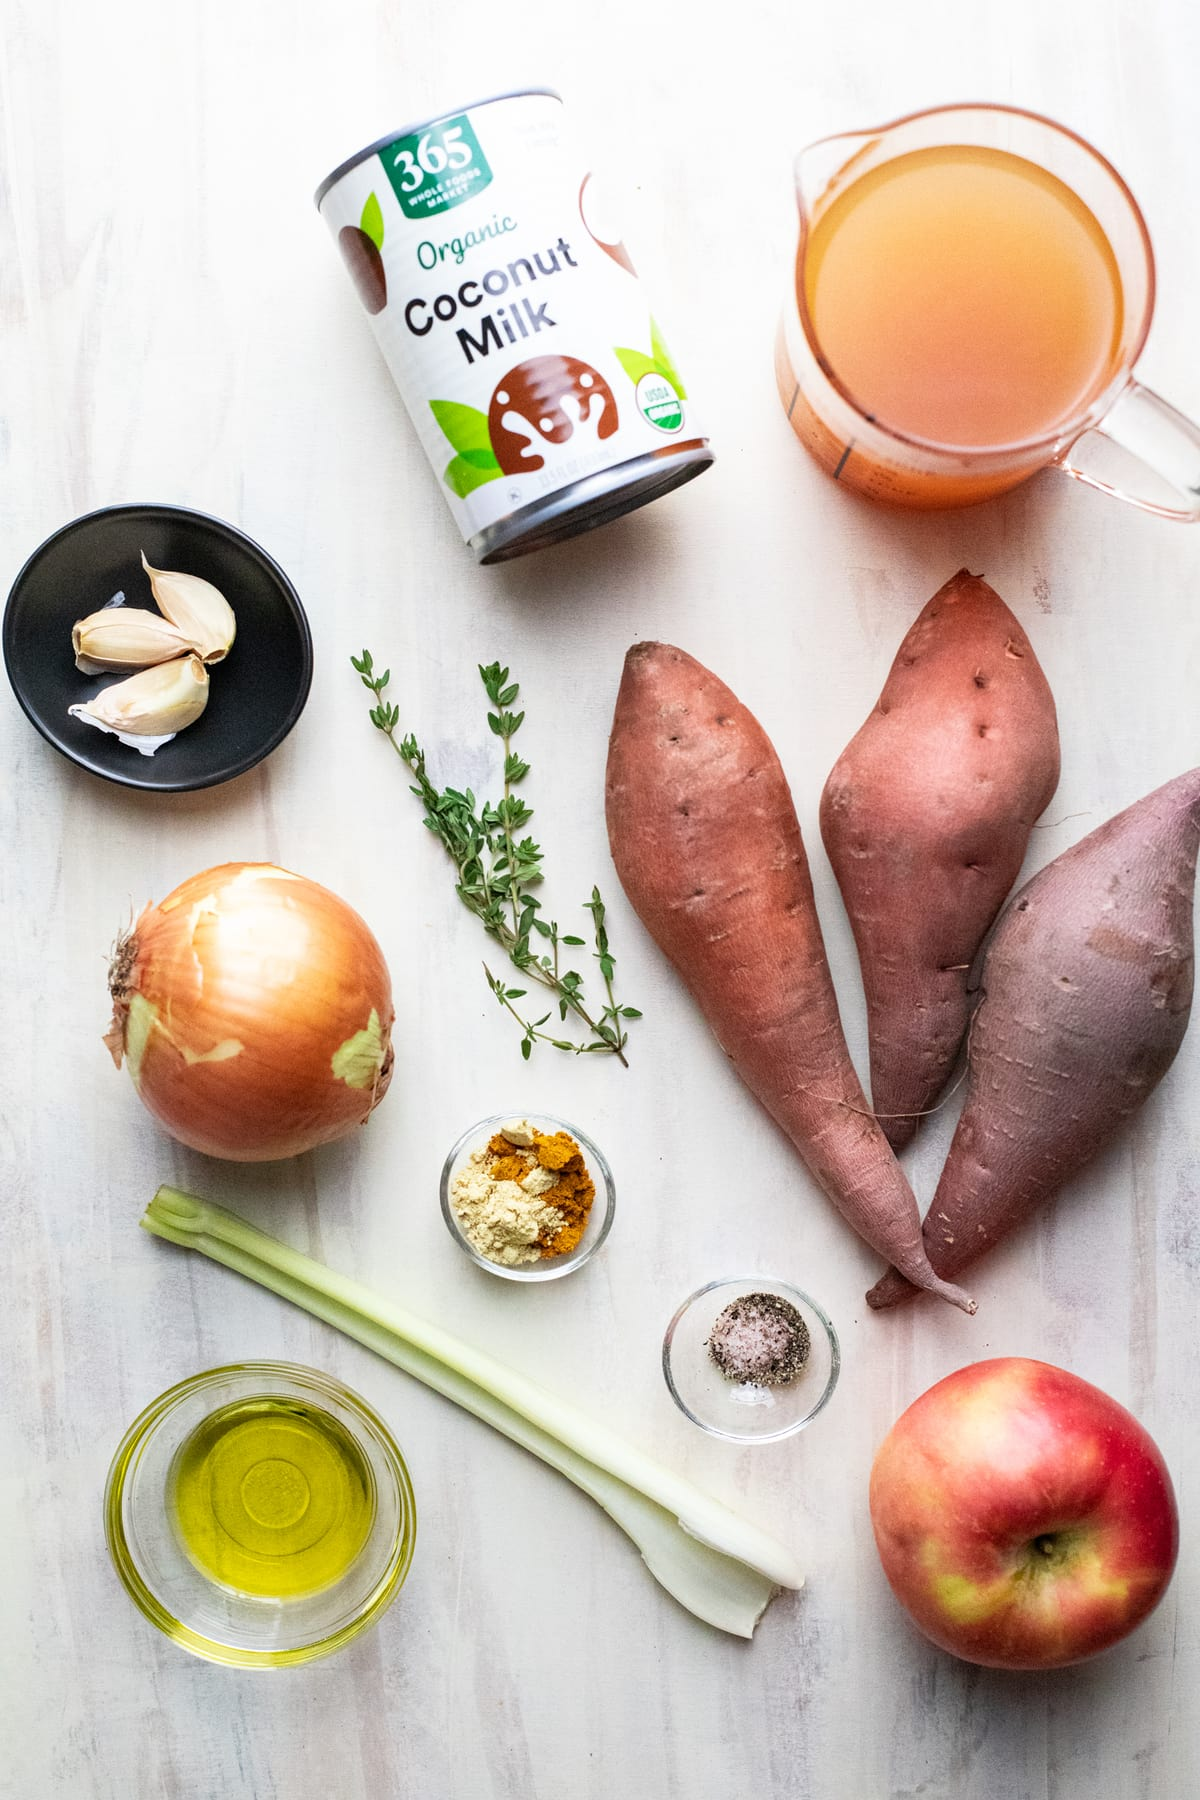 Ingredients for sweet potato bisque arranged on a white background.